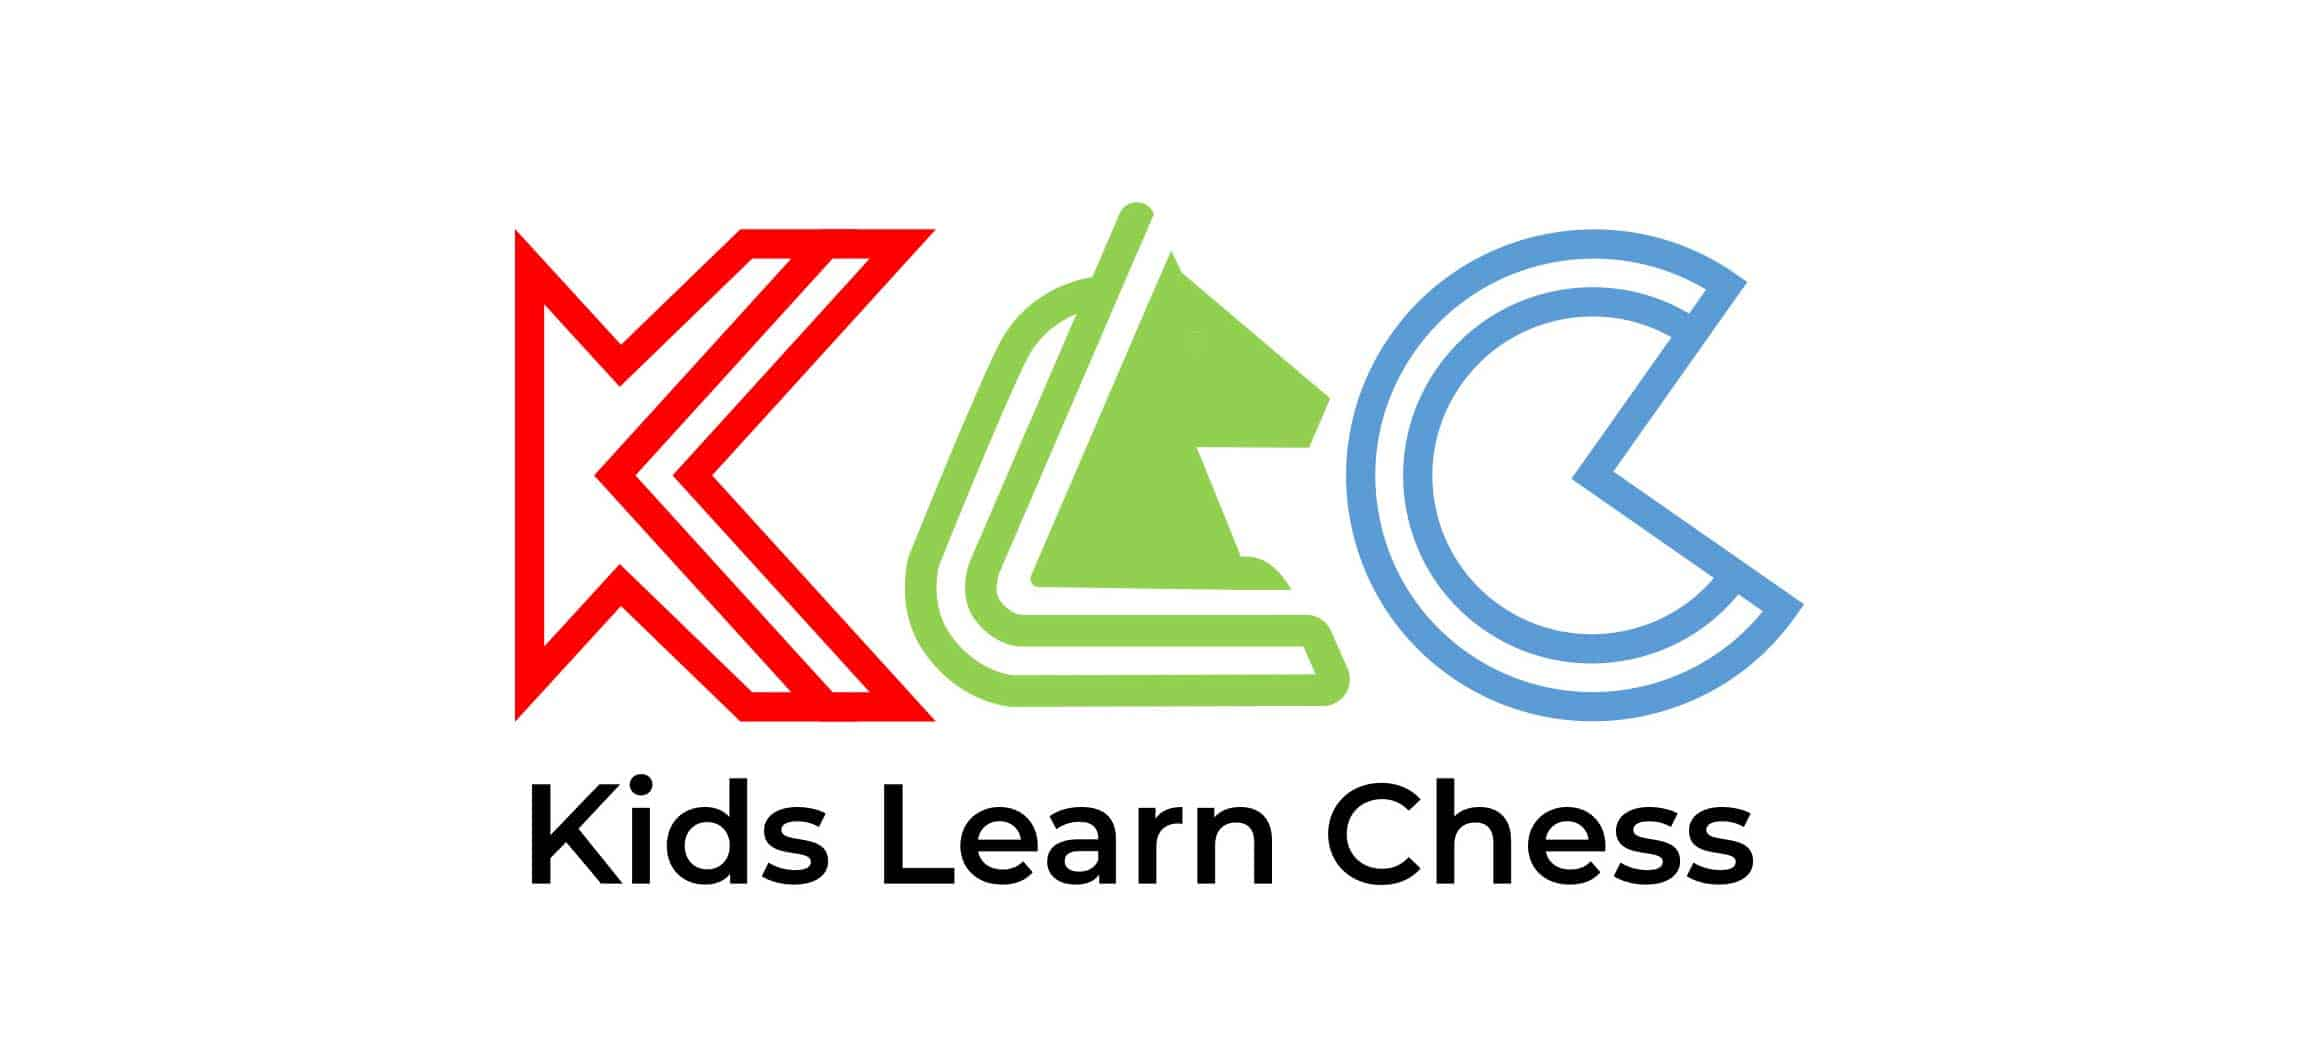 Kids Learn Chess Logo